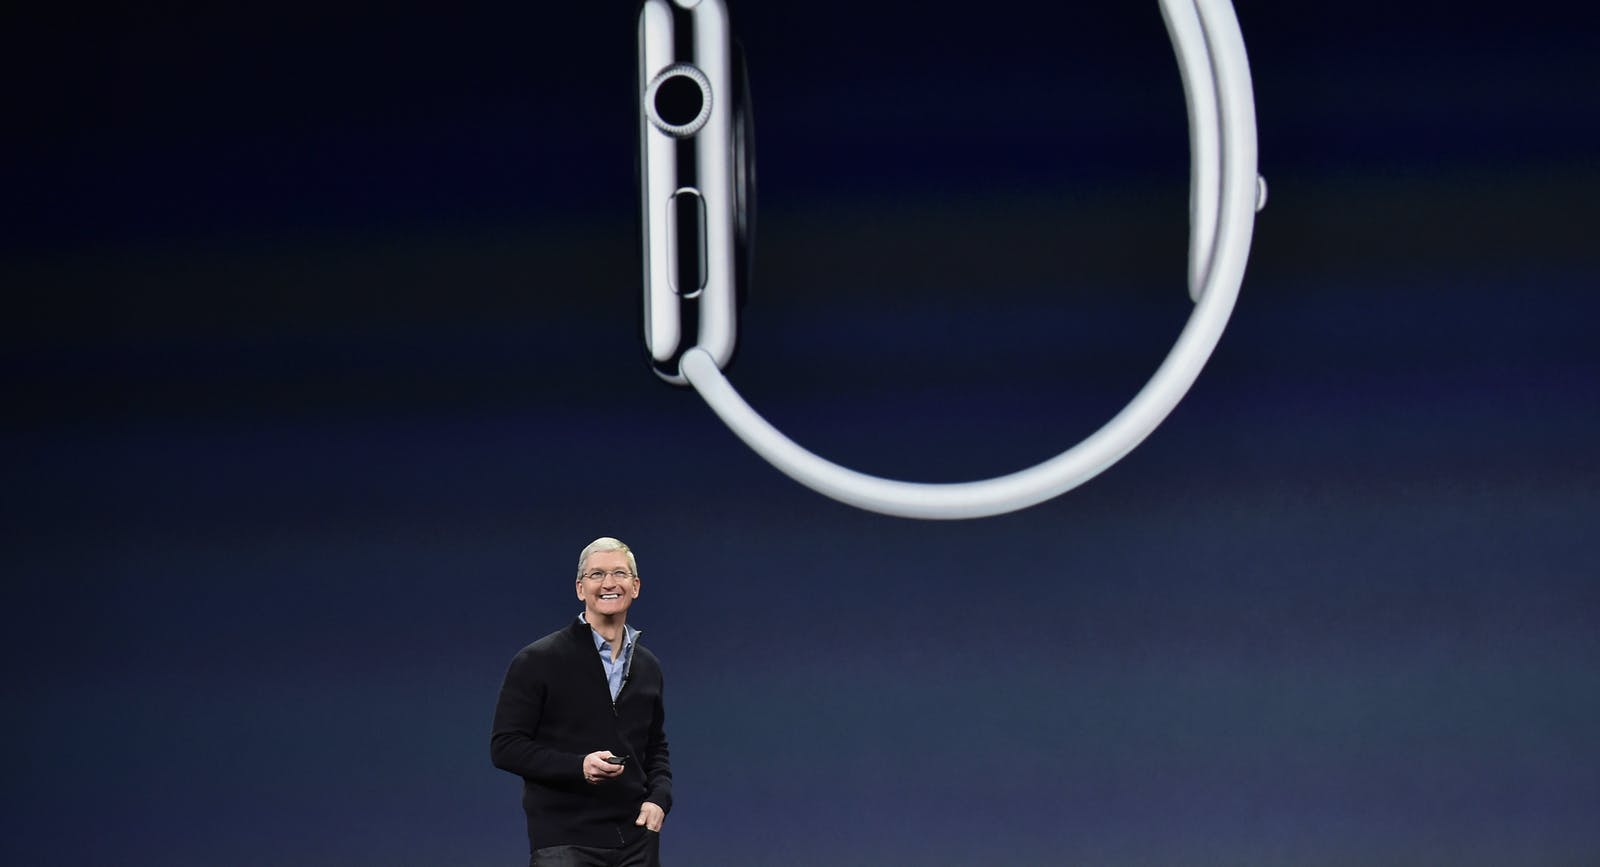 Apple CEO Tim Cook on Monday. Photo by Bloomberg.